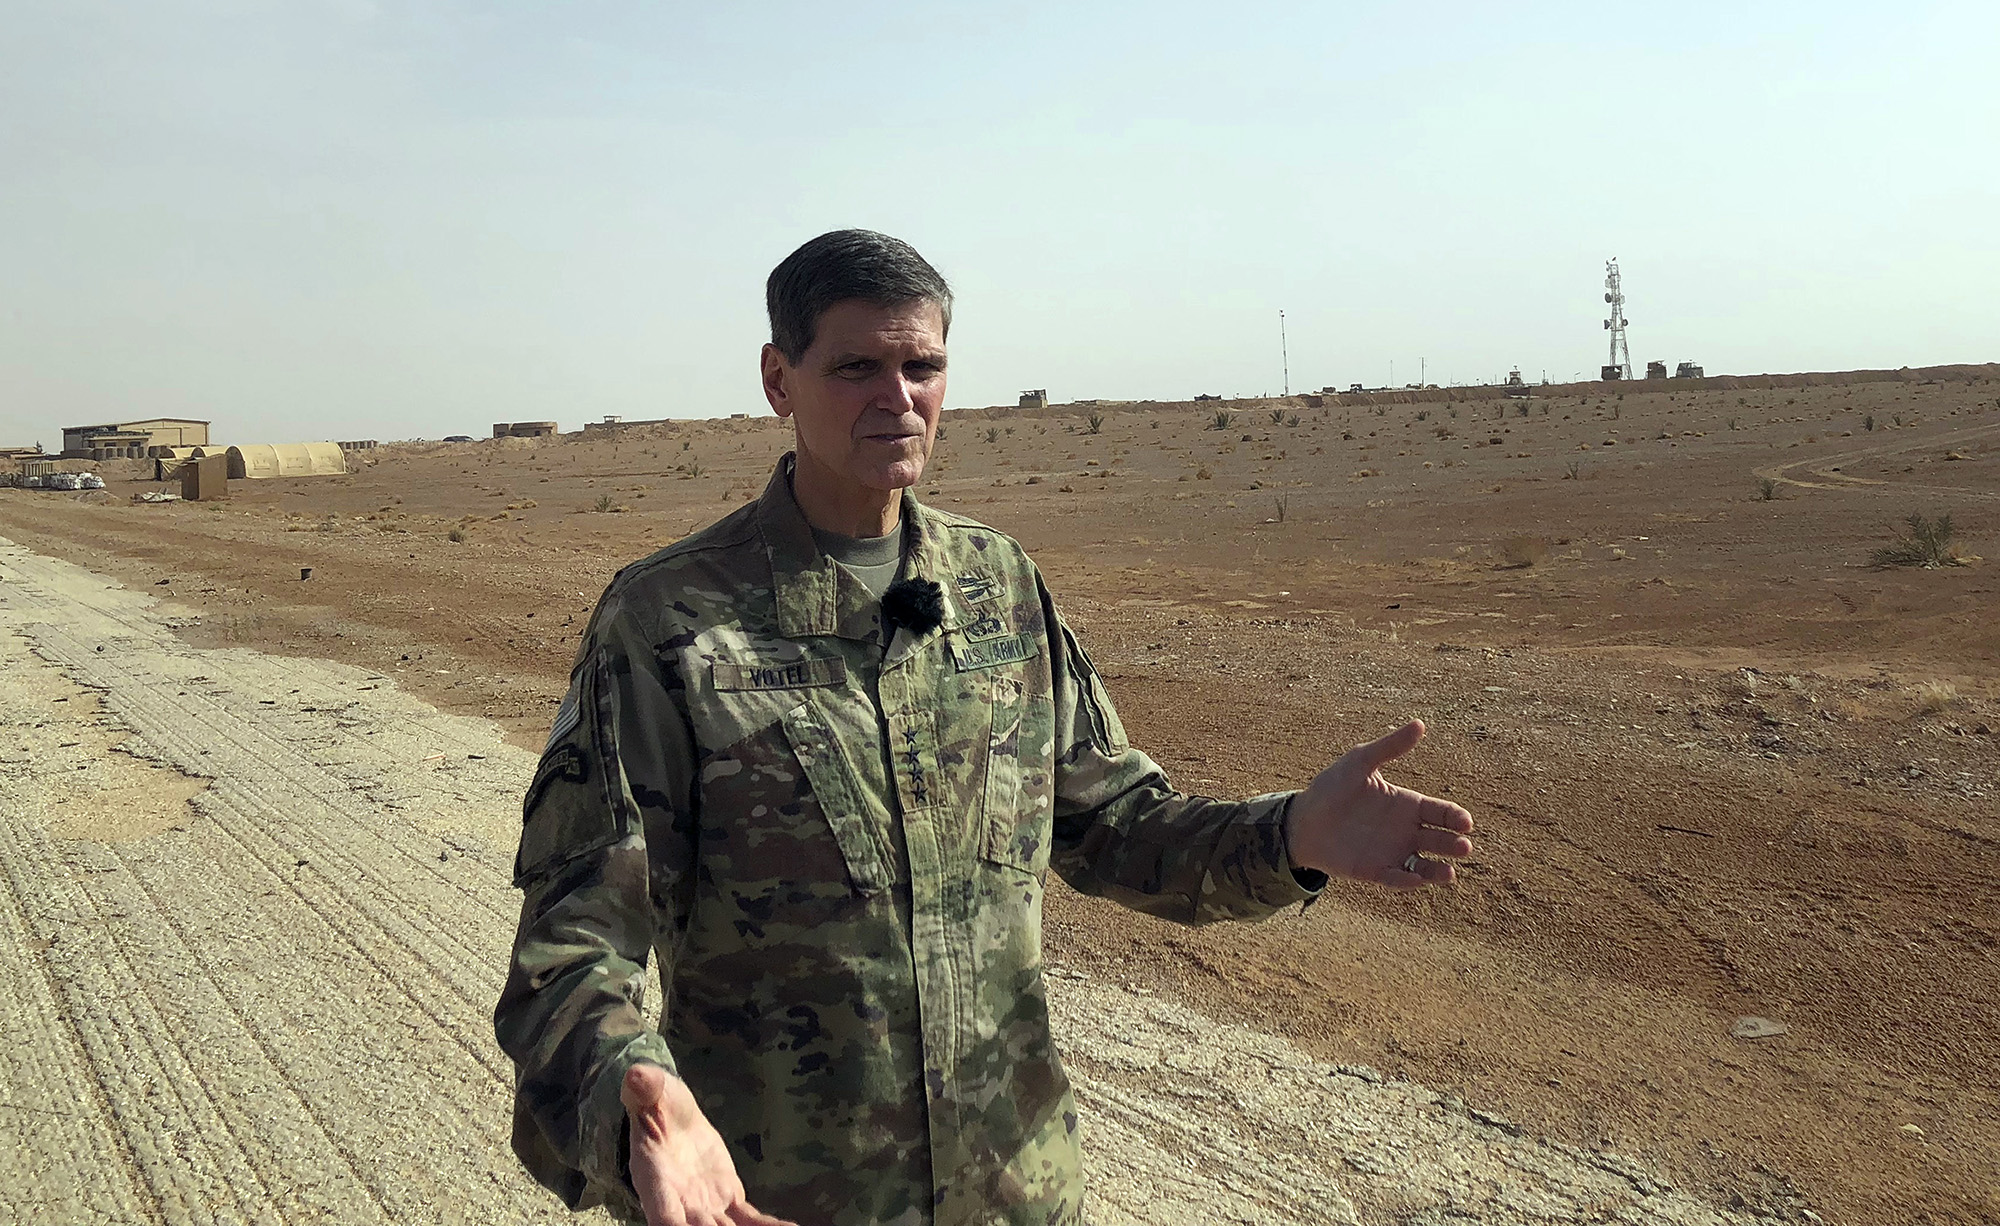 Gen. Joseph Votel, top U.S. commander in the Middle East, speaks to reporters during an unannounced visit Monday, Oct. 22, 2018, to the al-Tanf military outpost in southern Syria. The U.S. trains Syrian opposition forces at the outpost. (Lolita Baldor/AP)